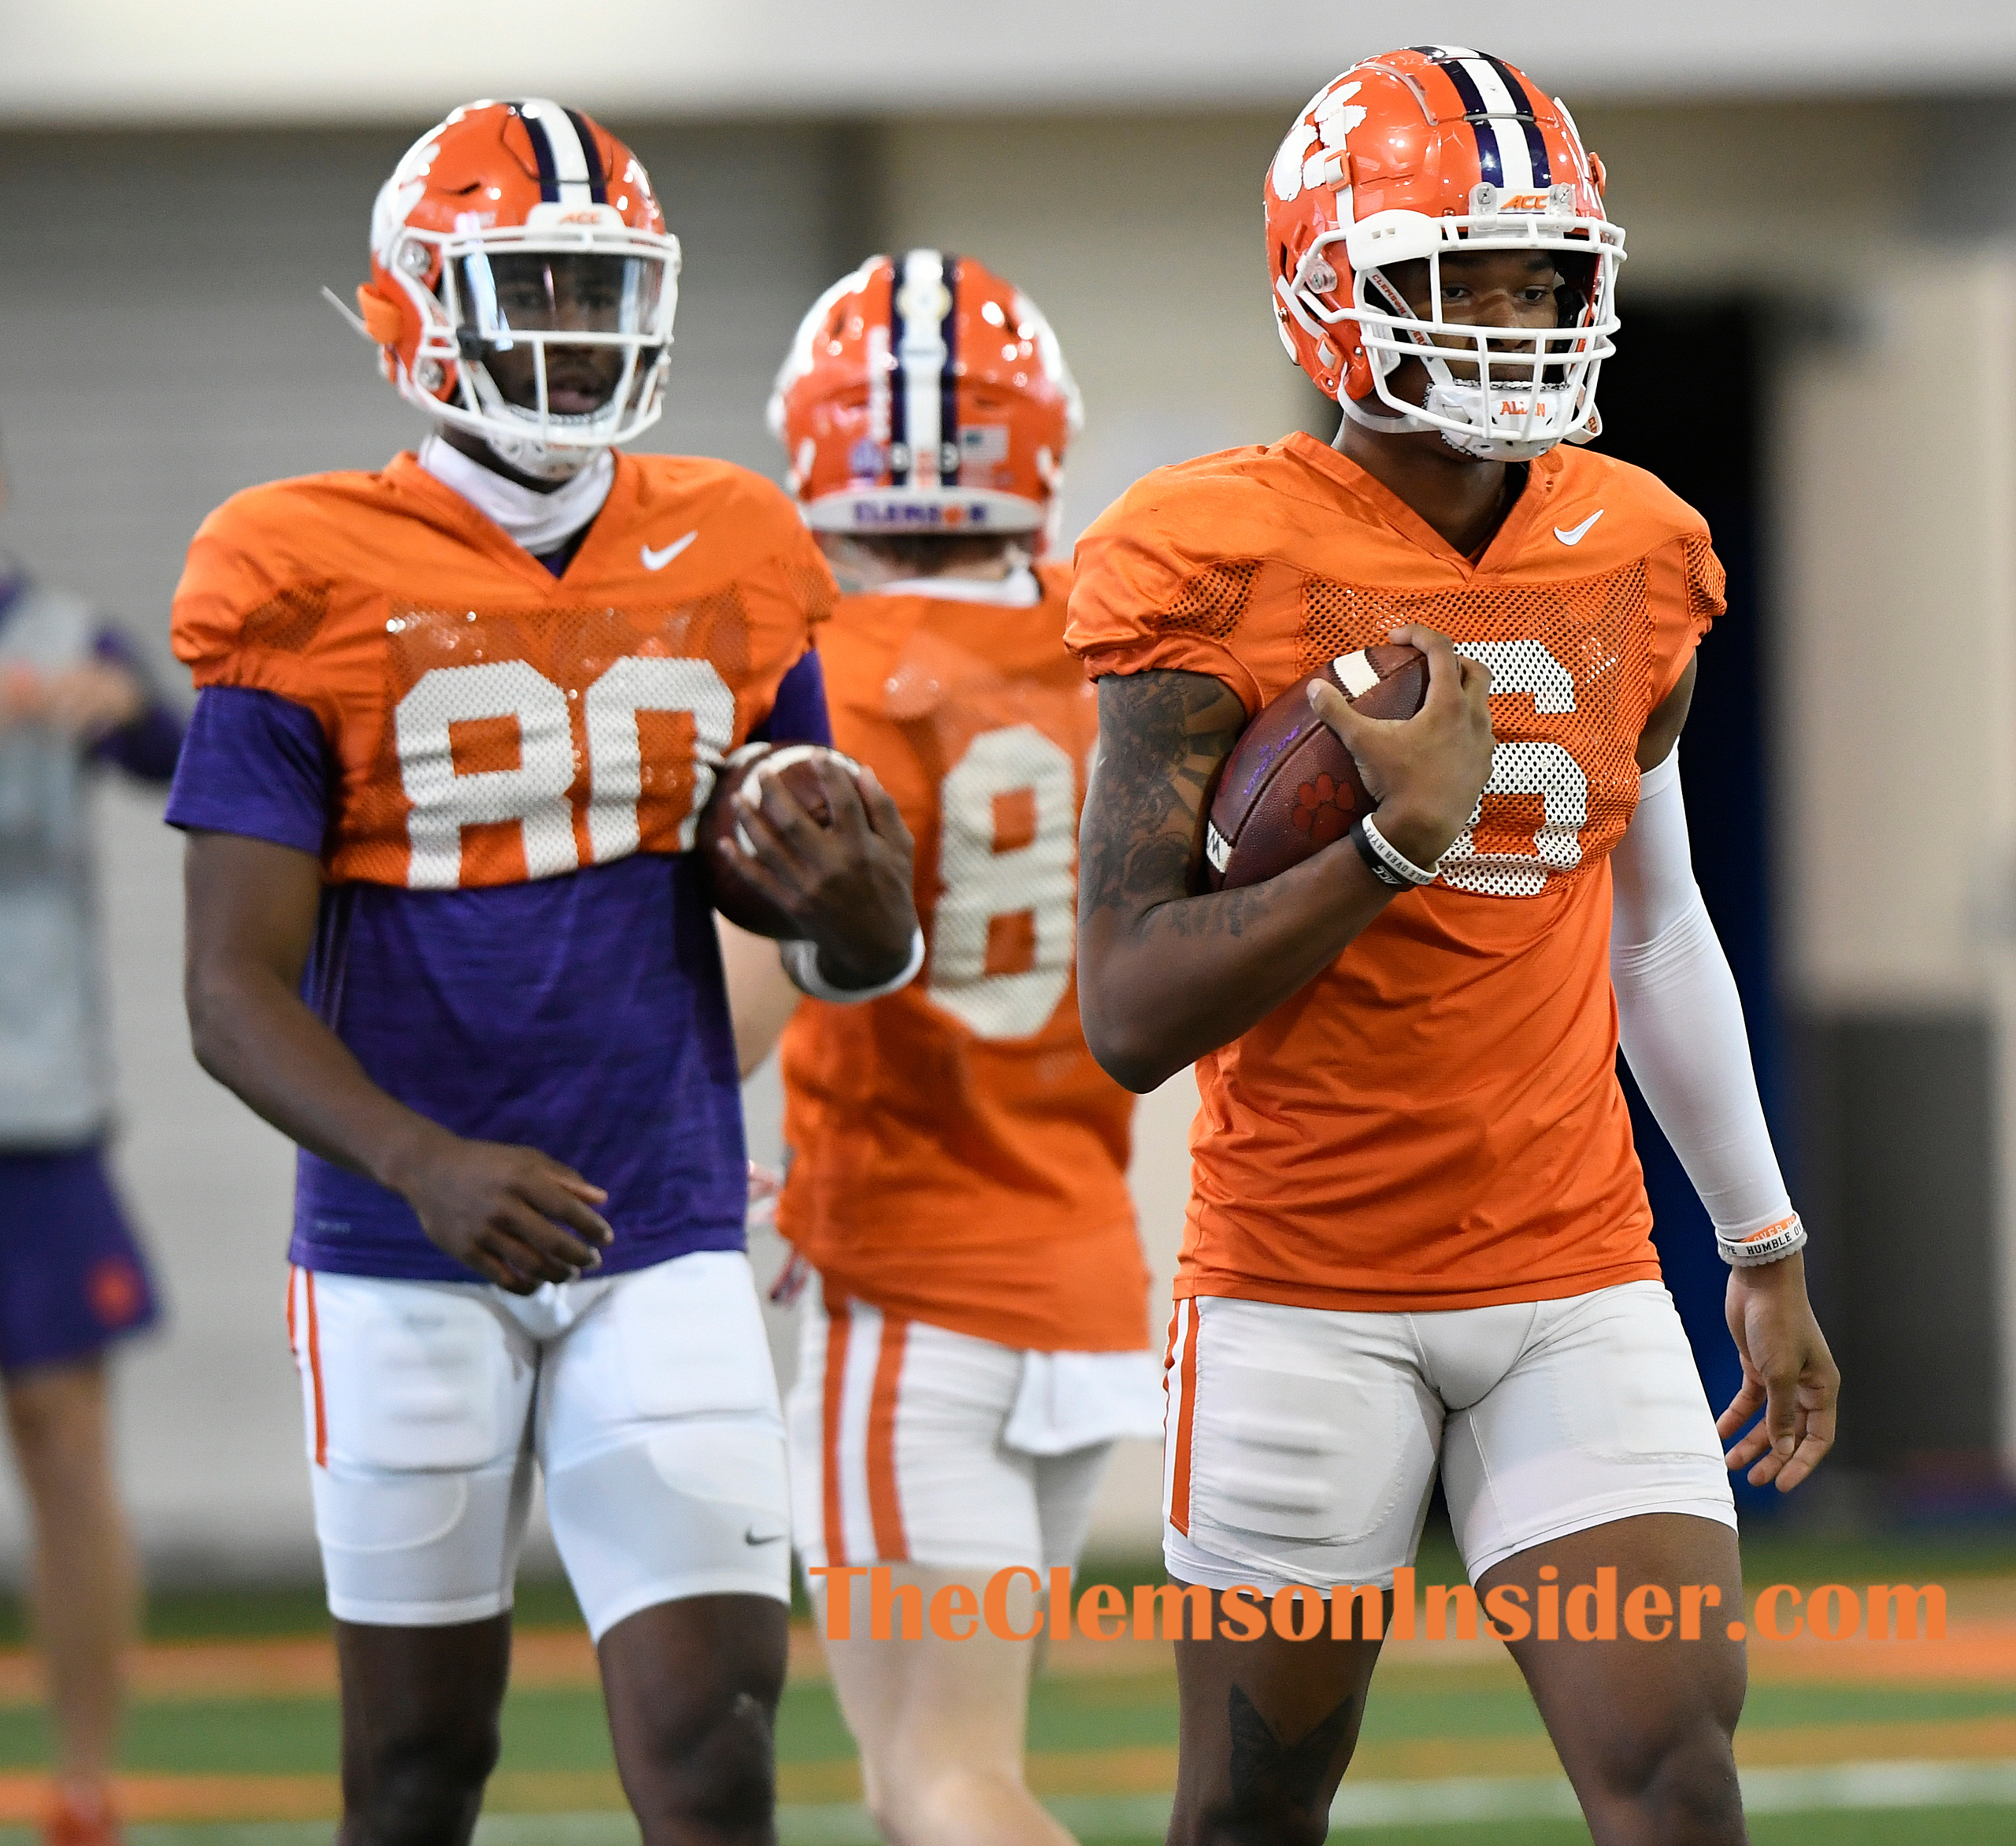 Clemson wide receiver EJ Williams (6) during the Tiger's spring practice Monday, March 22, 2021. Bart Boatwright/The Clemson Insider